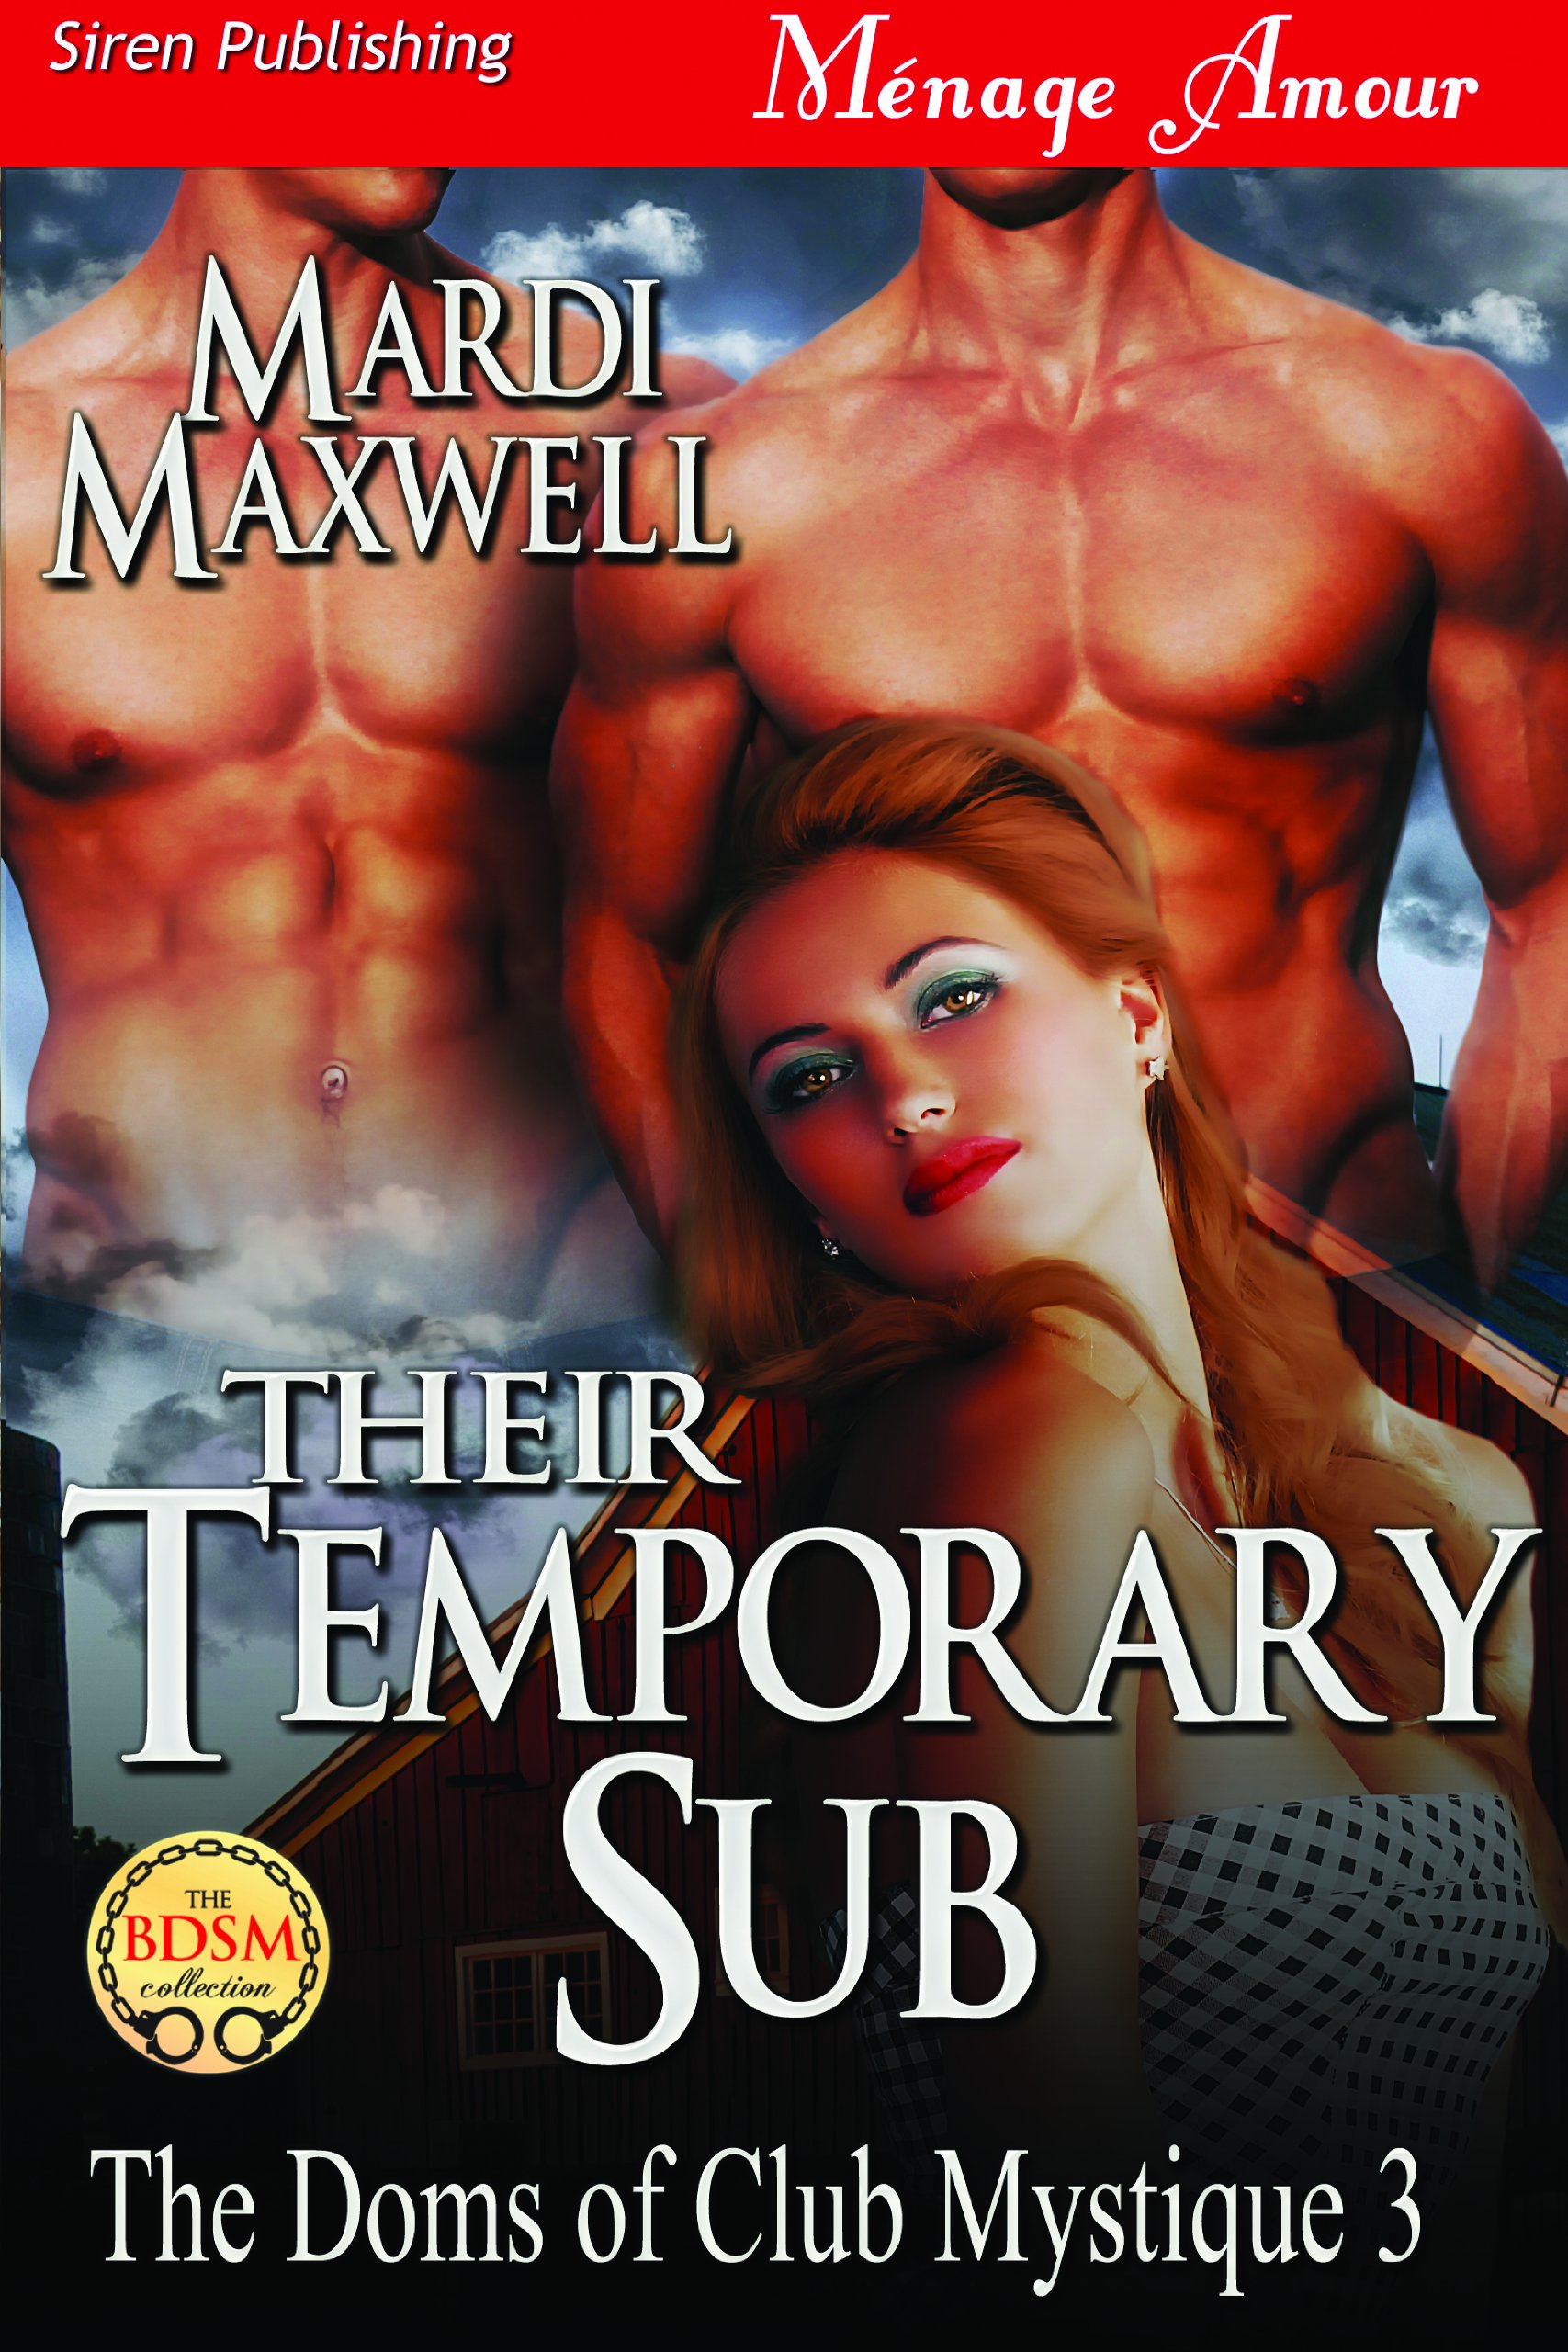 Read Online Their Temporary Sub [The Doms of Club Mystique 3] (Siren Publishing Menage Amour) (The Doms of Club Mystique: Menage Amour) ebook